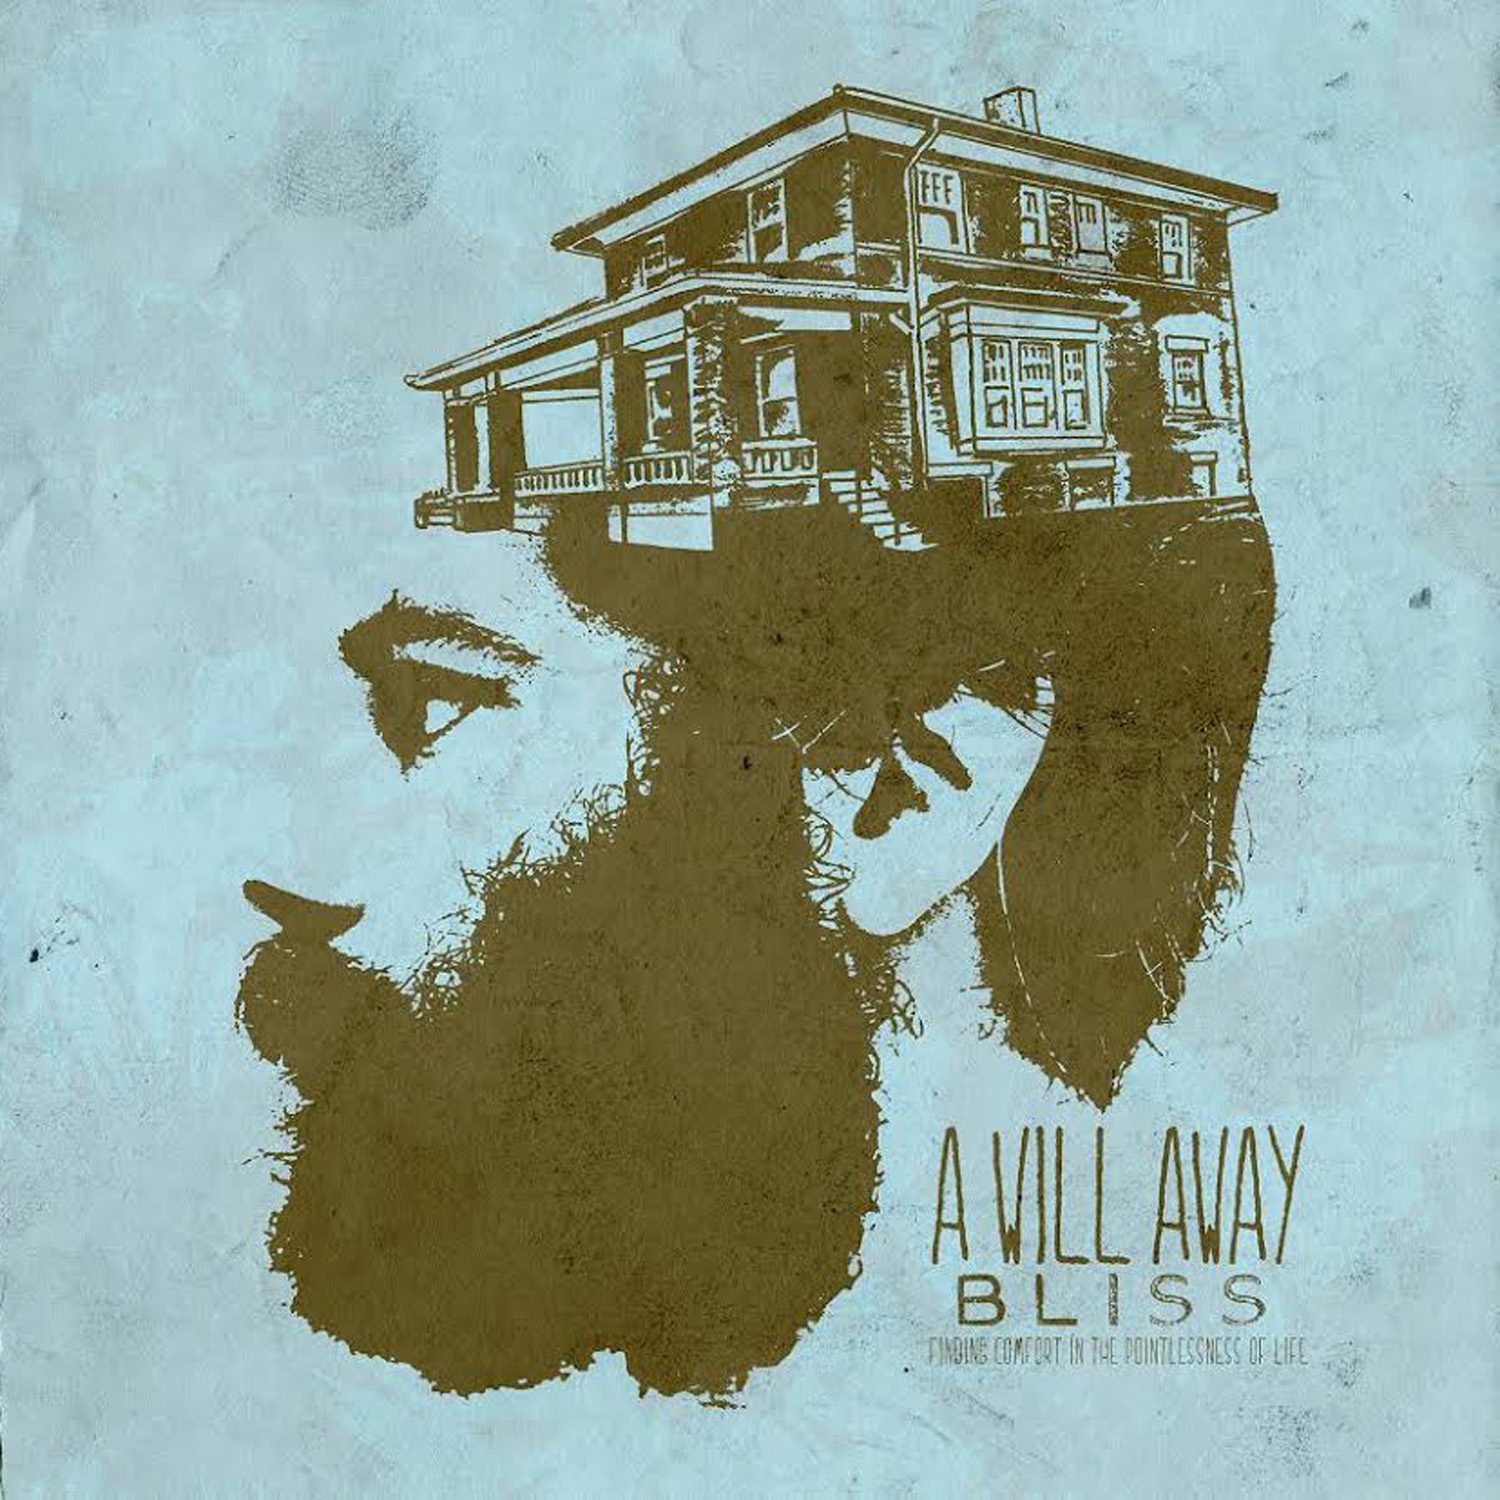 A Will Away - Bliss